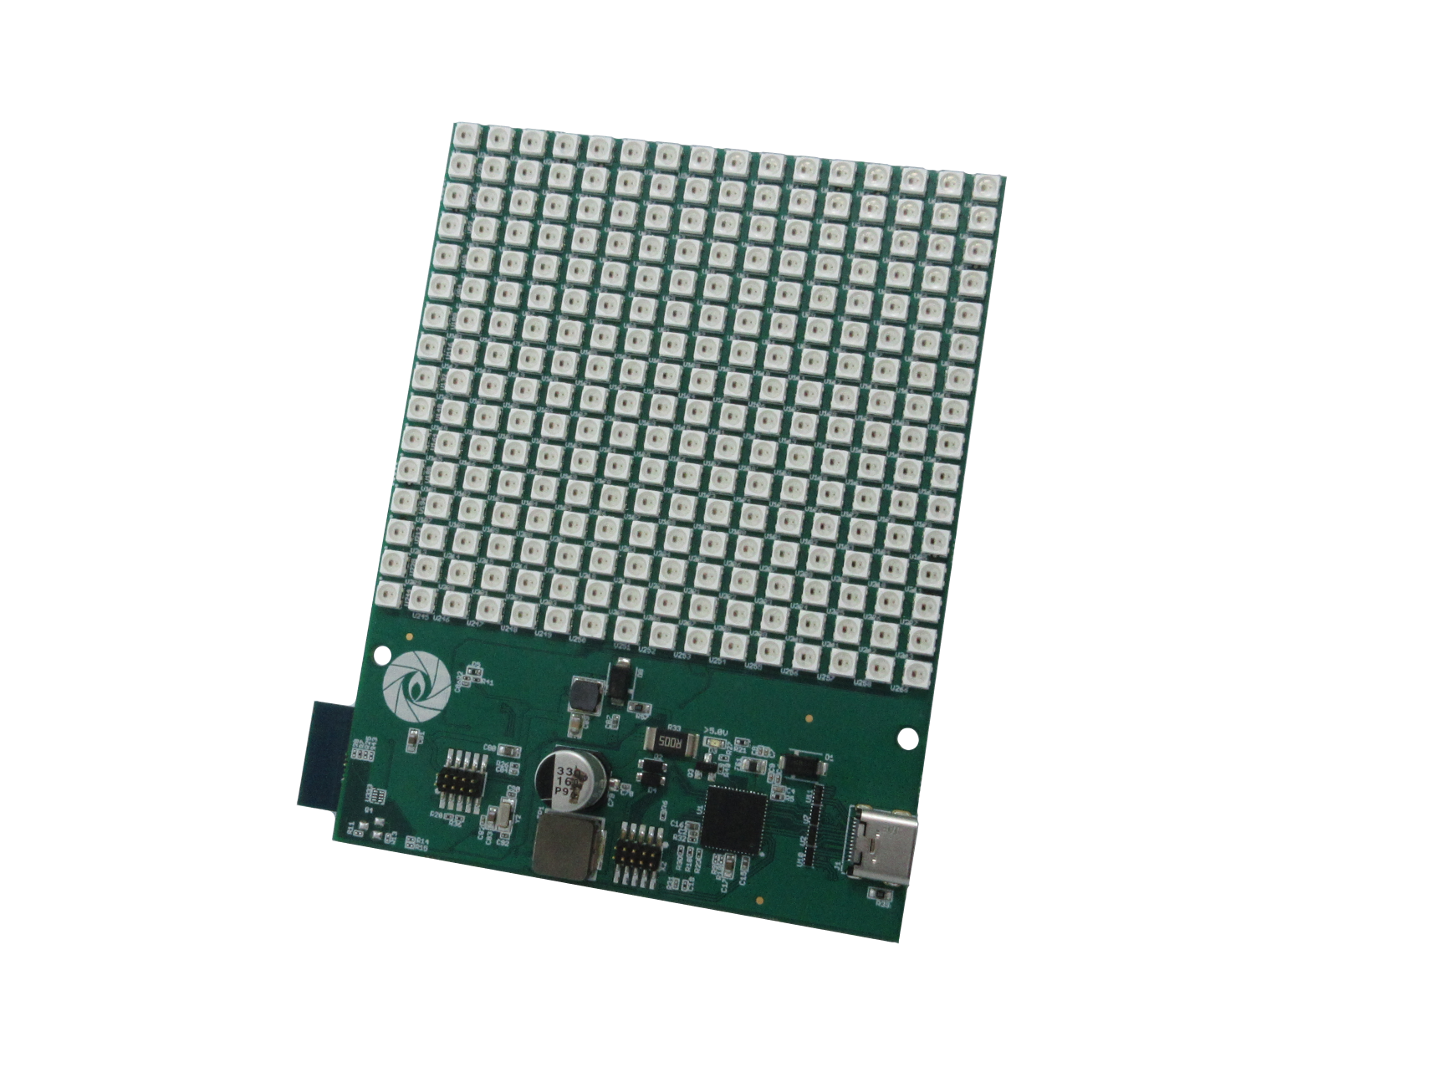 WiFi RGB LED panel from Gumstix